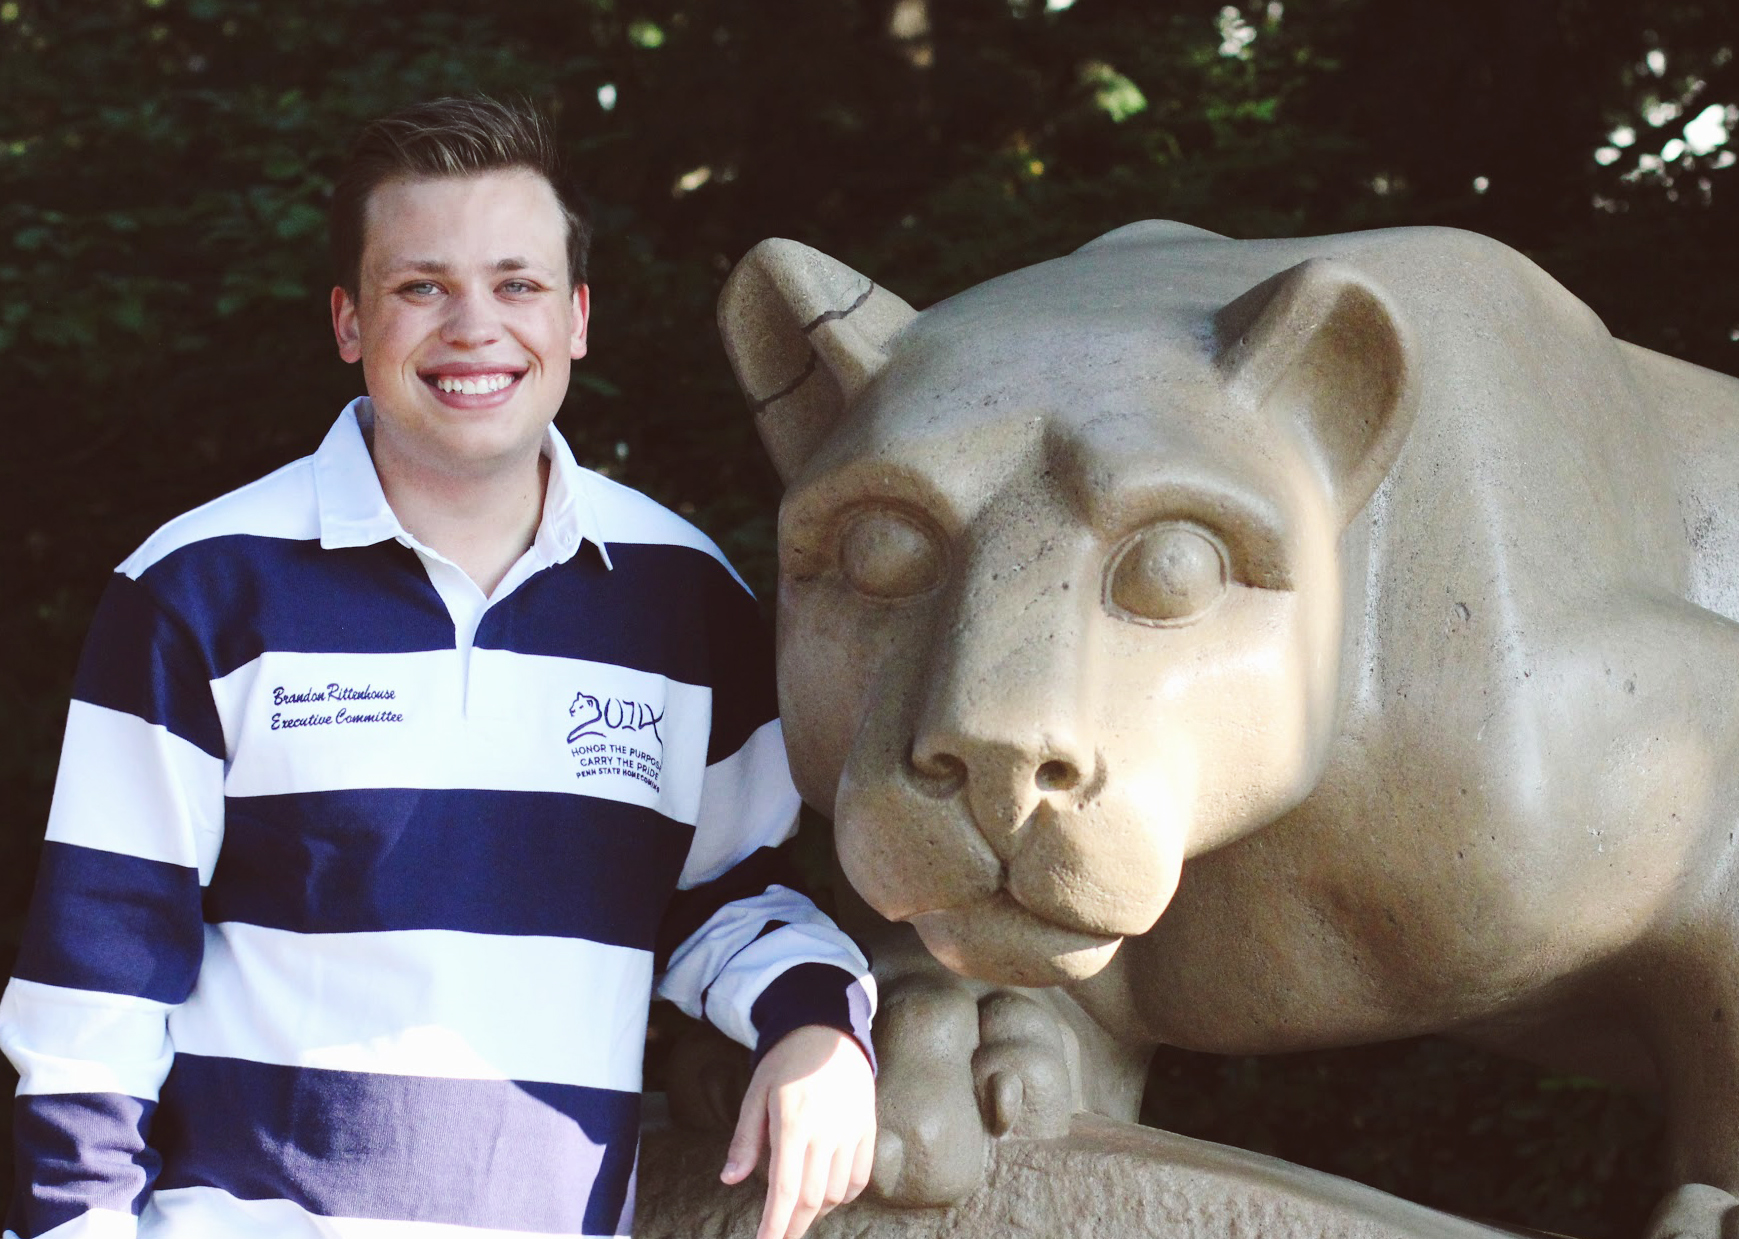 Meet Your 2015 Homecoming Executive Director, Brandon Rittenhouse.